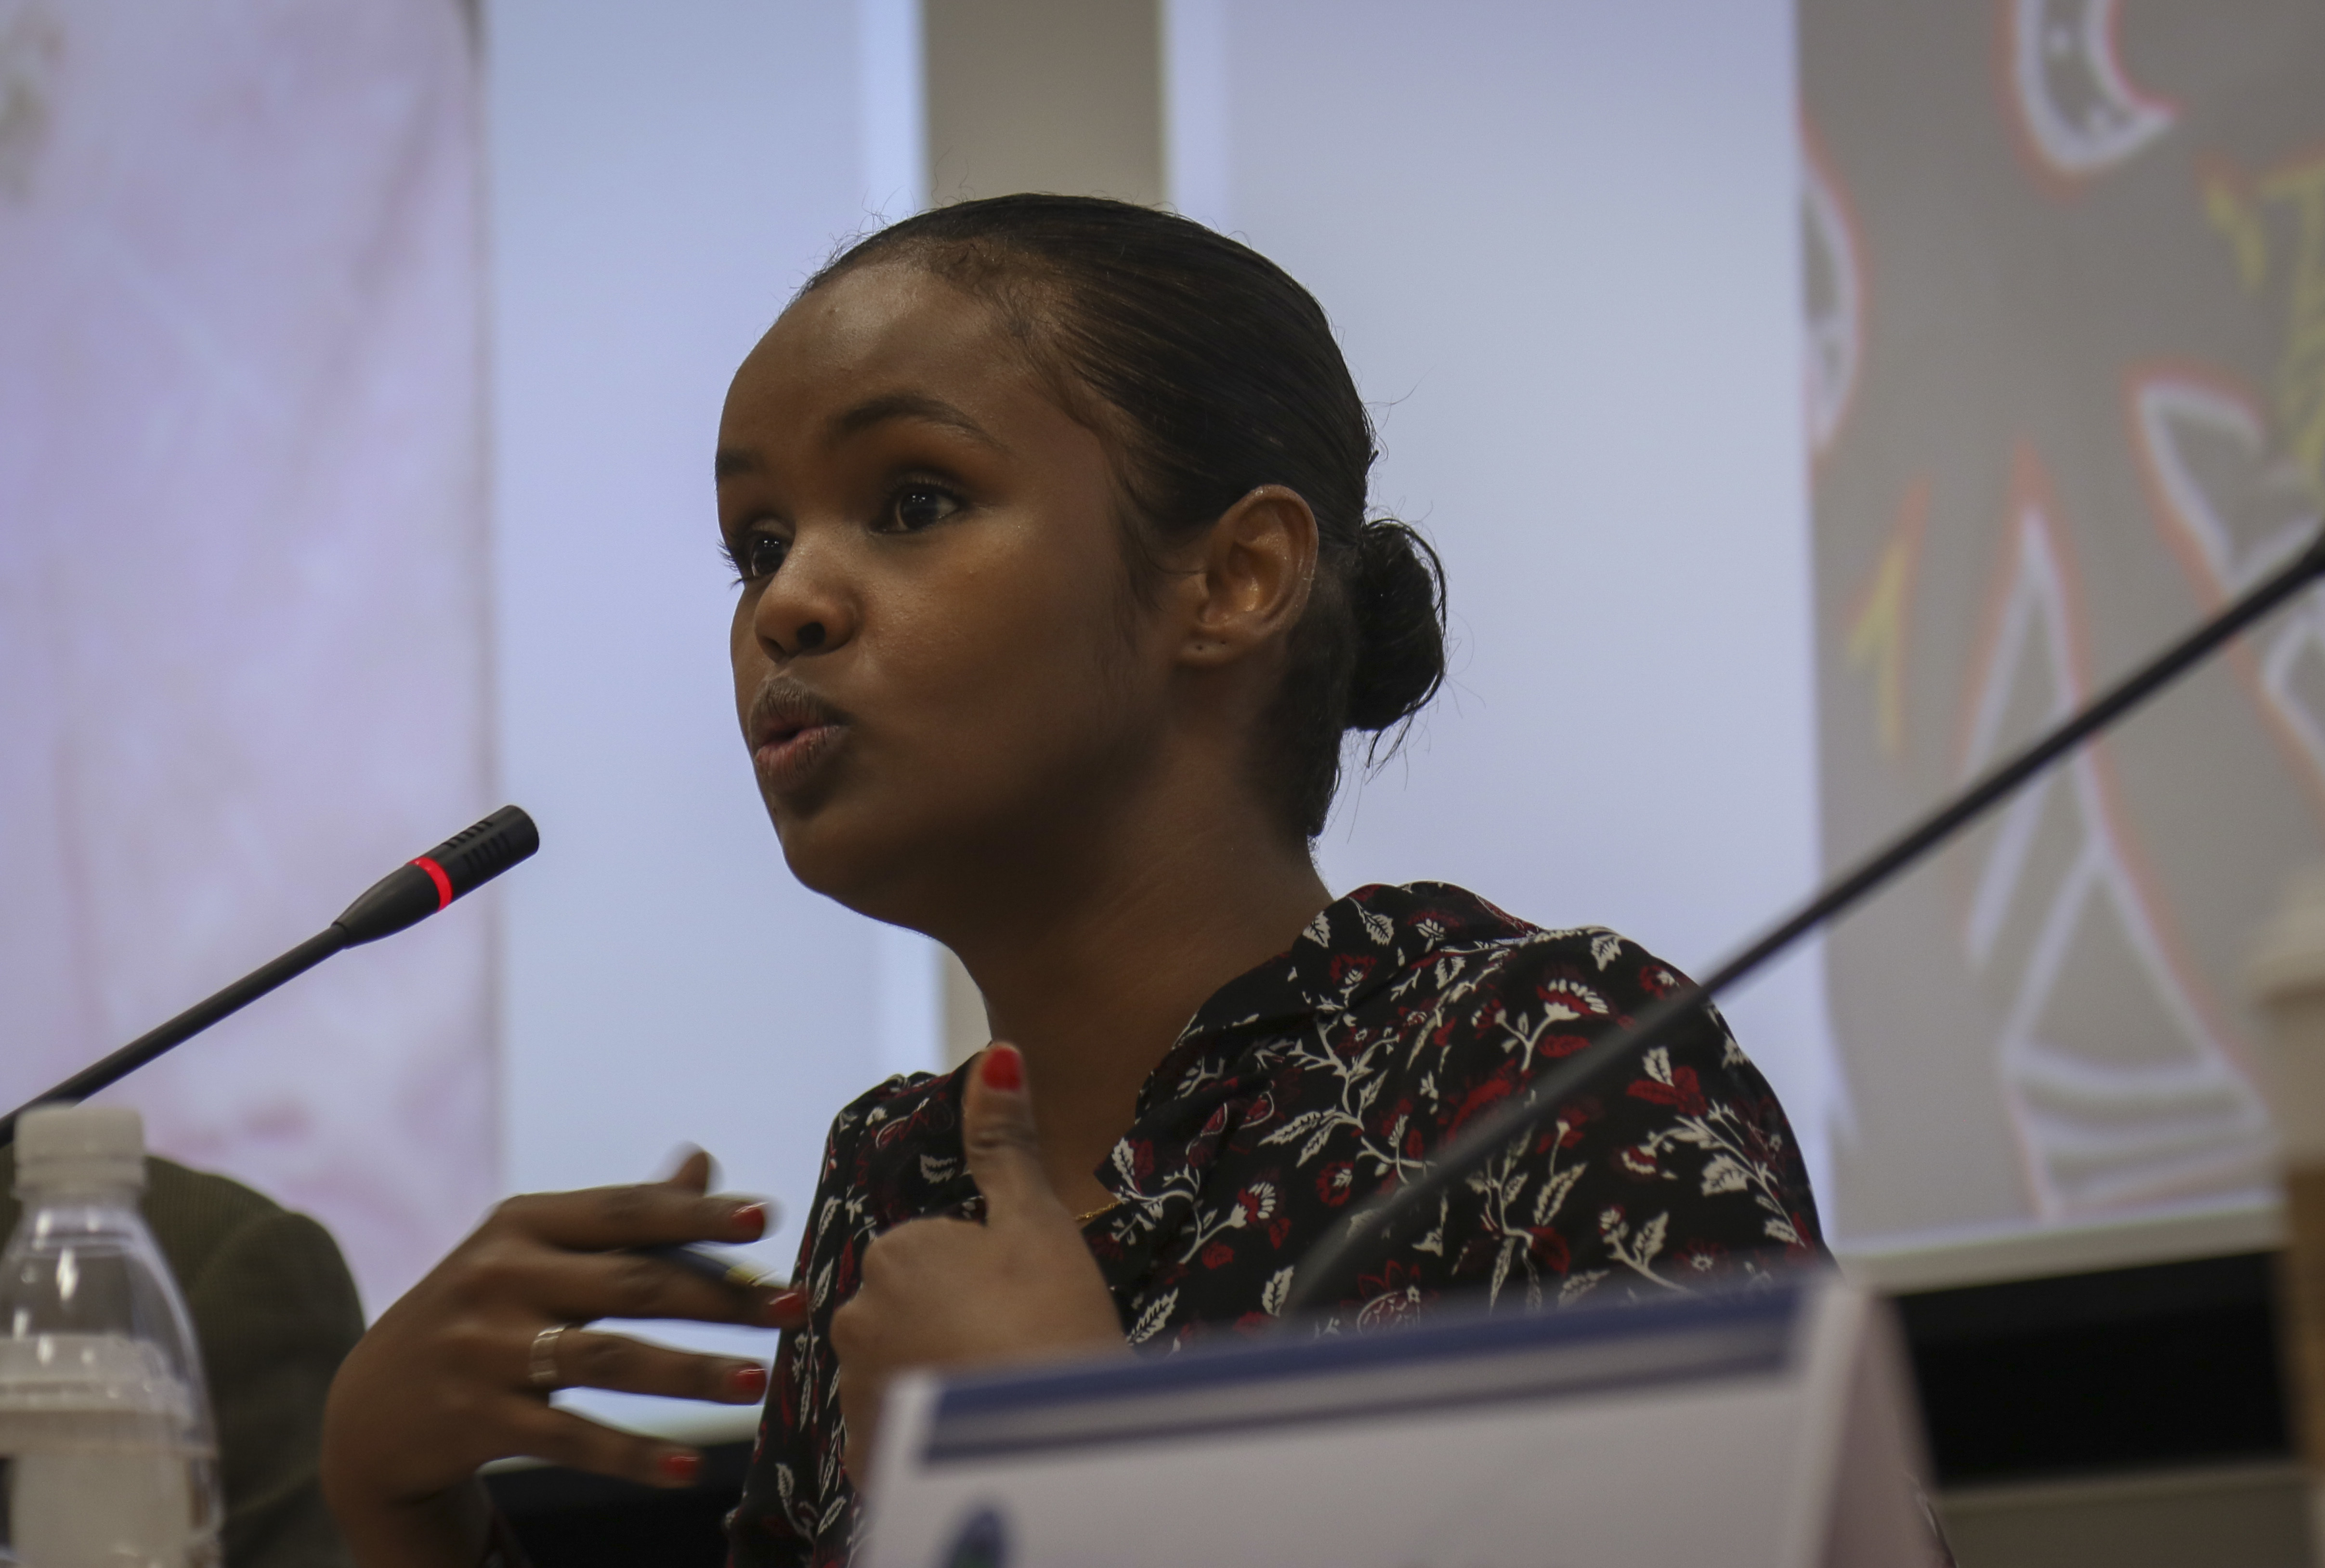 Ilwad Elman, director of programs and development for the Elman Peace and Human Rights Center in Somalia, speaks during a Youth, Peace and Security in Africa dialogue held in Stuttgart, Germany, Oct. 15, 2019. Elman, a 2019 Nobel Peace Prize nominee from Somalia, spoke about incorporating youth into policy decisions and actions as a means to counter violent extremism and promote peace throughout the continent.